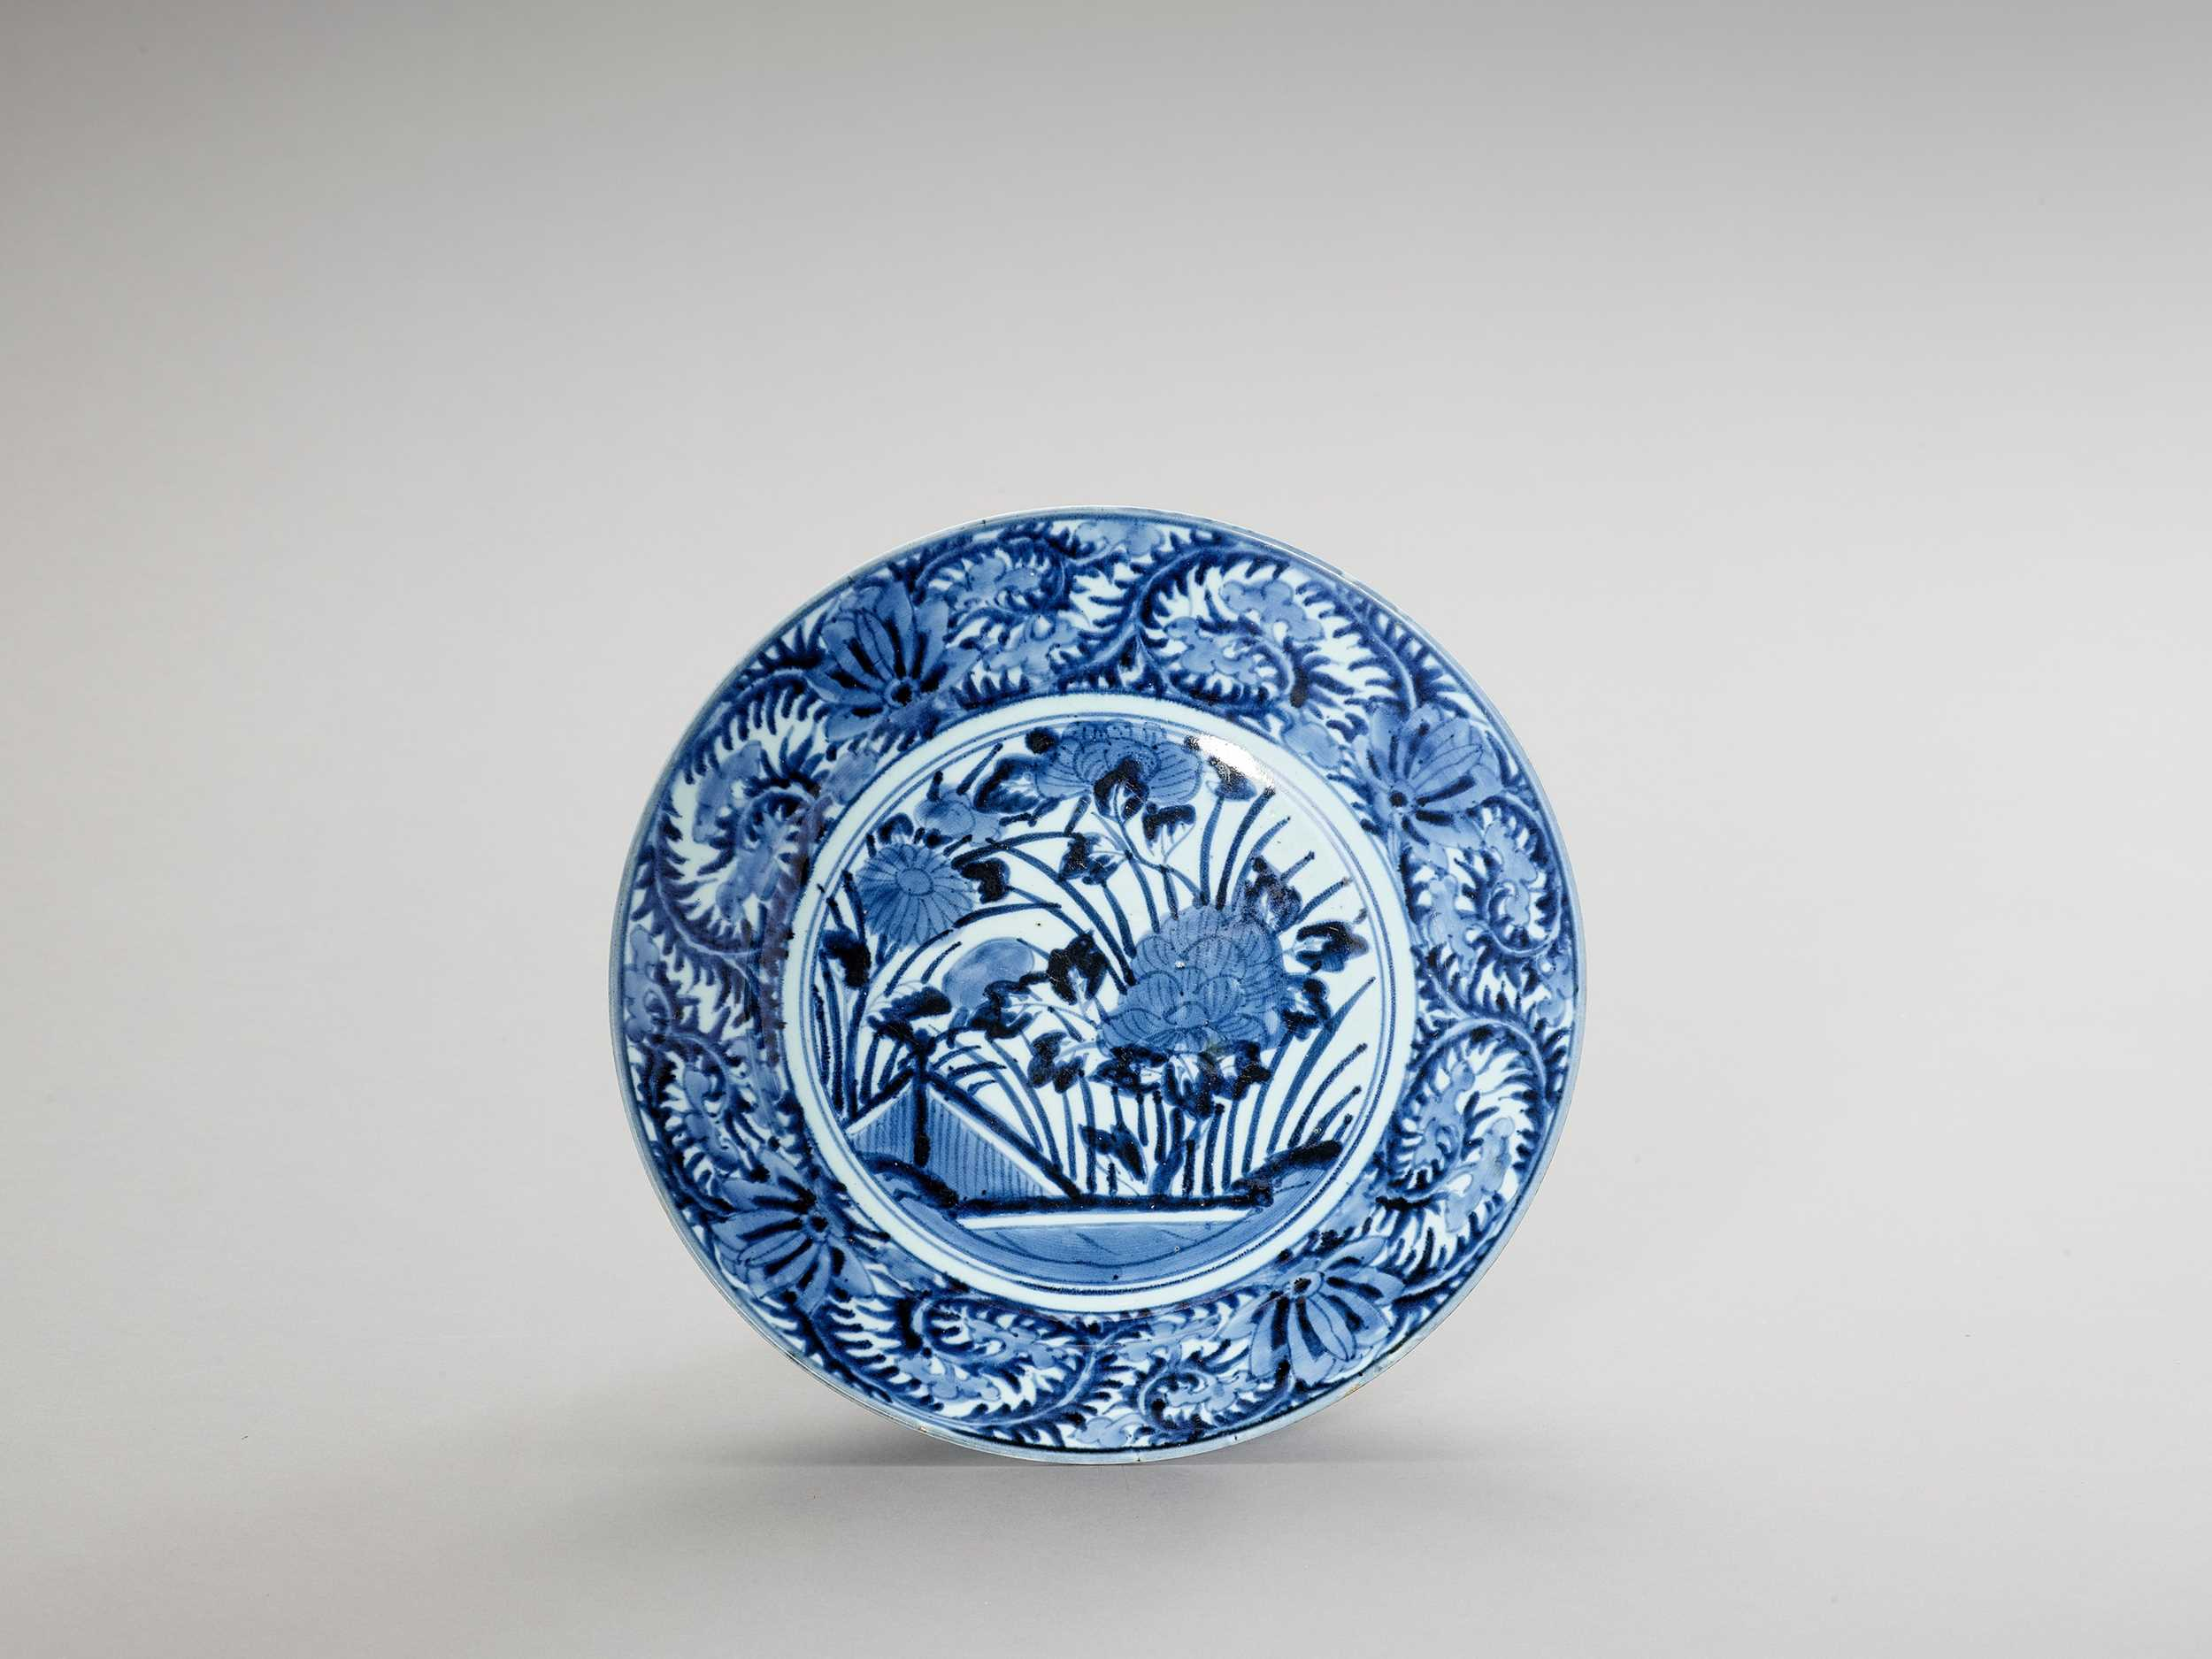 Lot 1020 - A BLUE AND WHITE 'FLORAL' PORCELAIN CHARGER